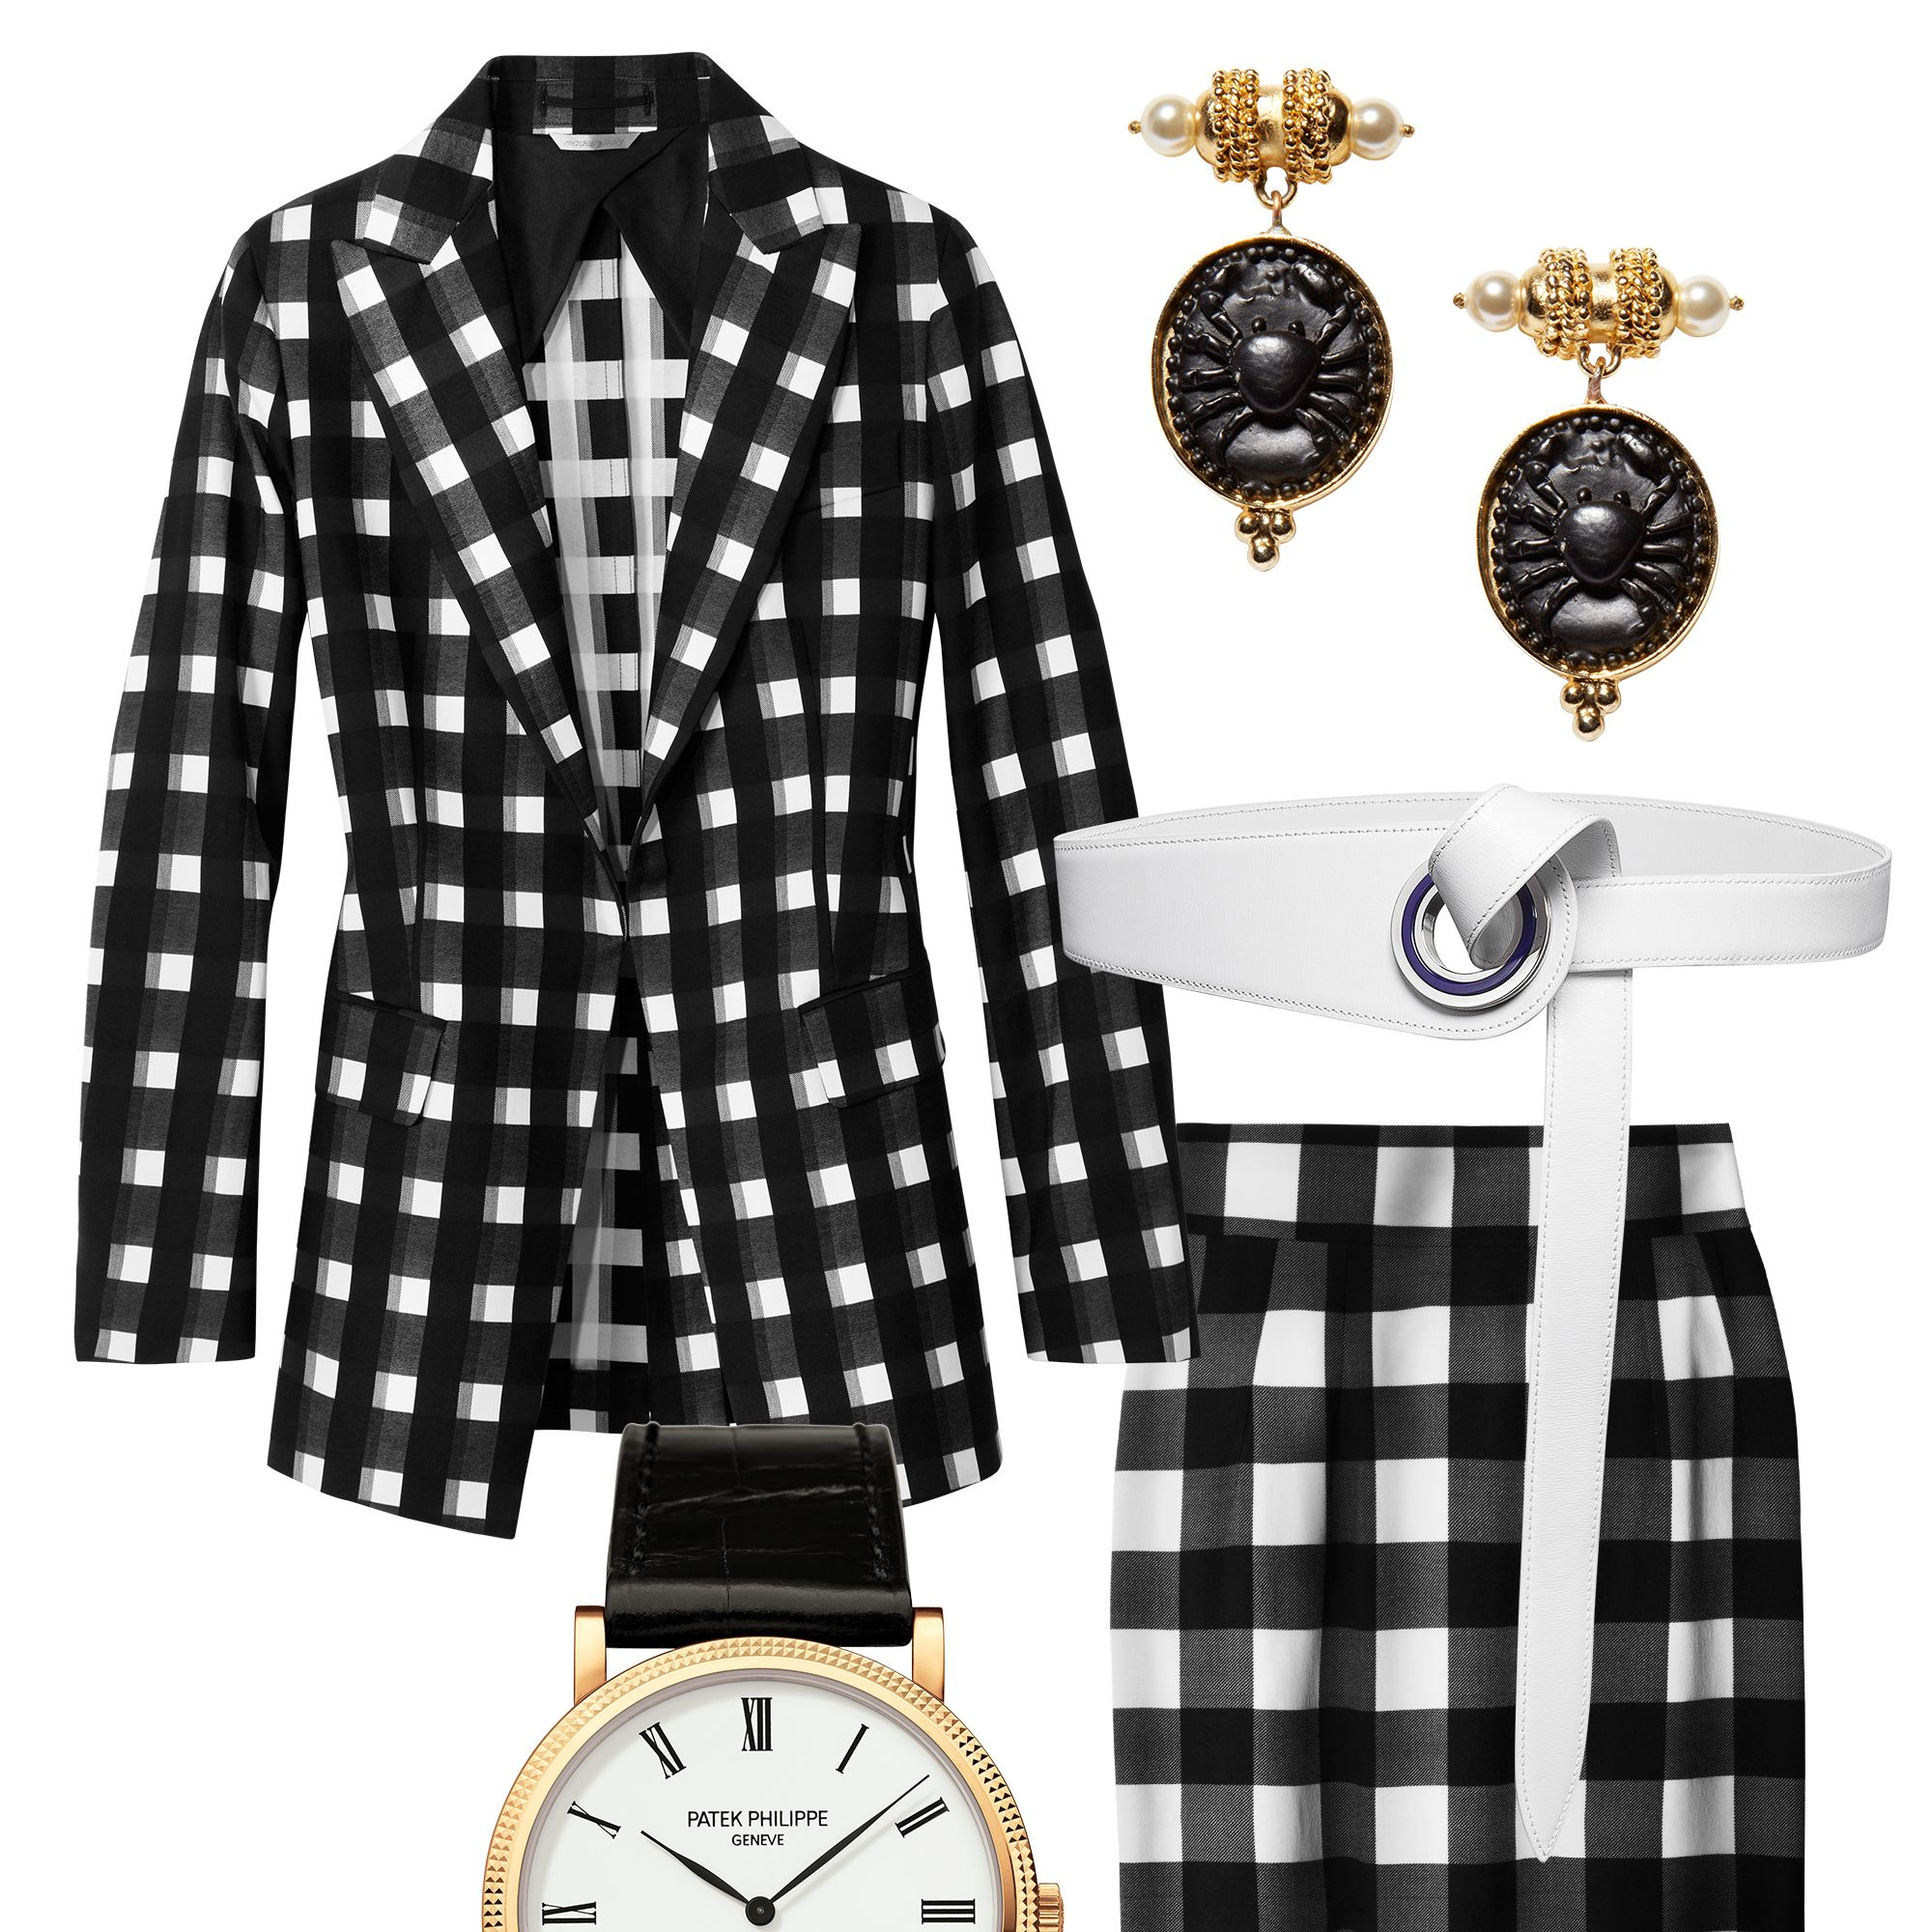 Office attire is getting a makeover thanks to a heavy dose of pattern play and just-this-side-of-sexy silhouettes. Take your cue from Joseph Altuzarra and anchor a gingham look with polished extras—black heels and a waist-defining belt are musts.